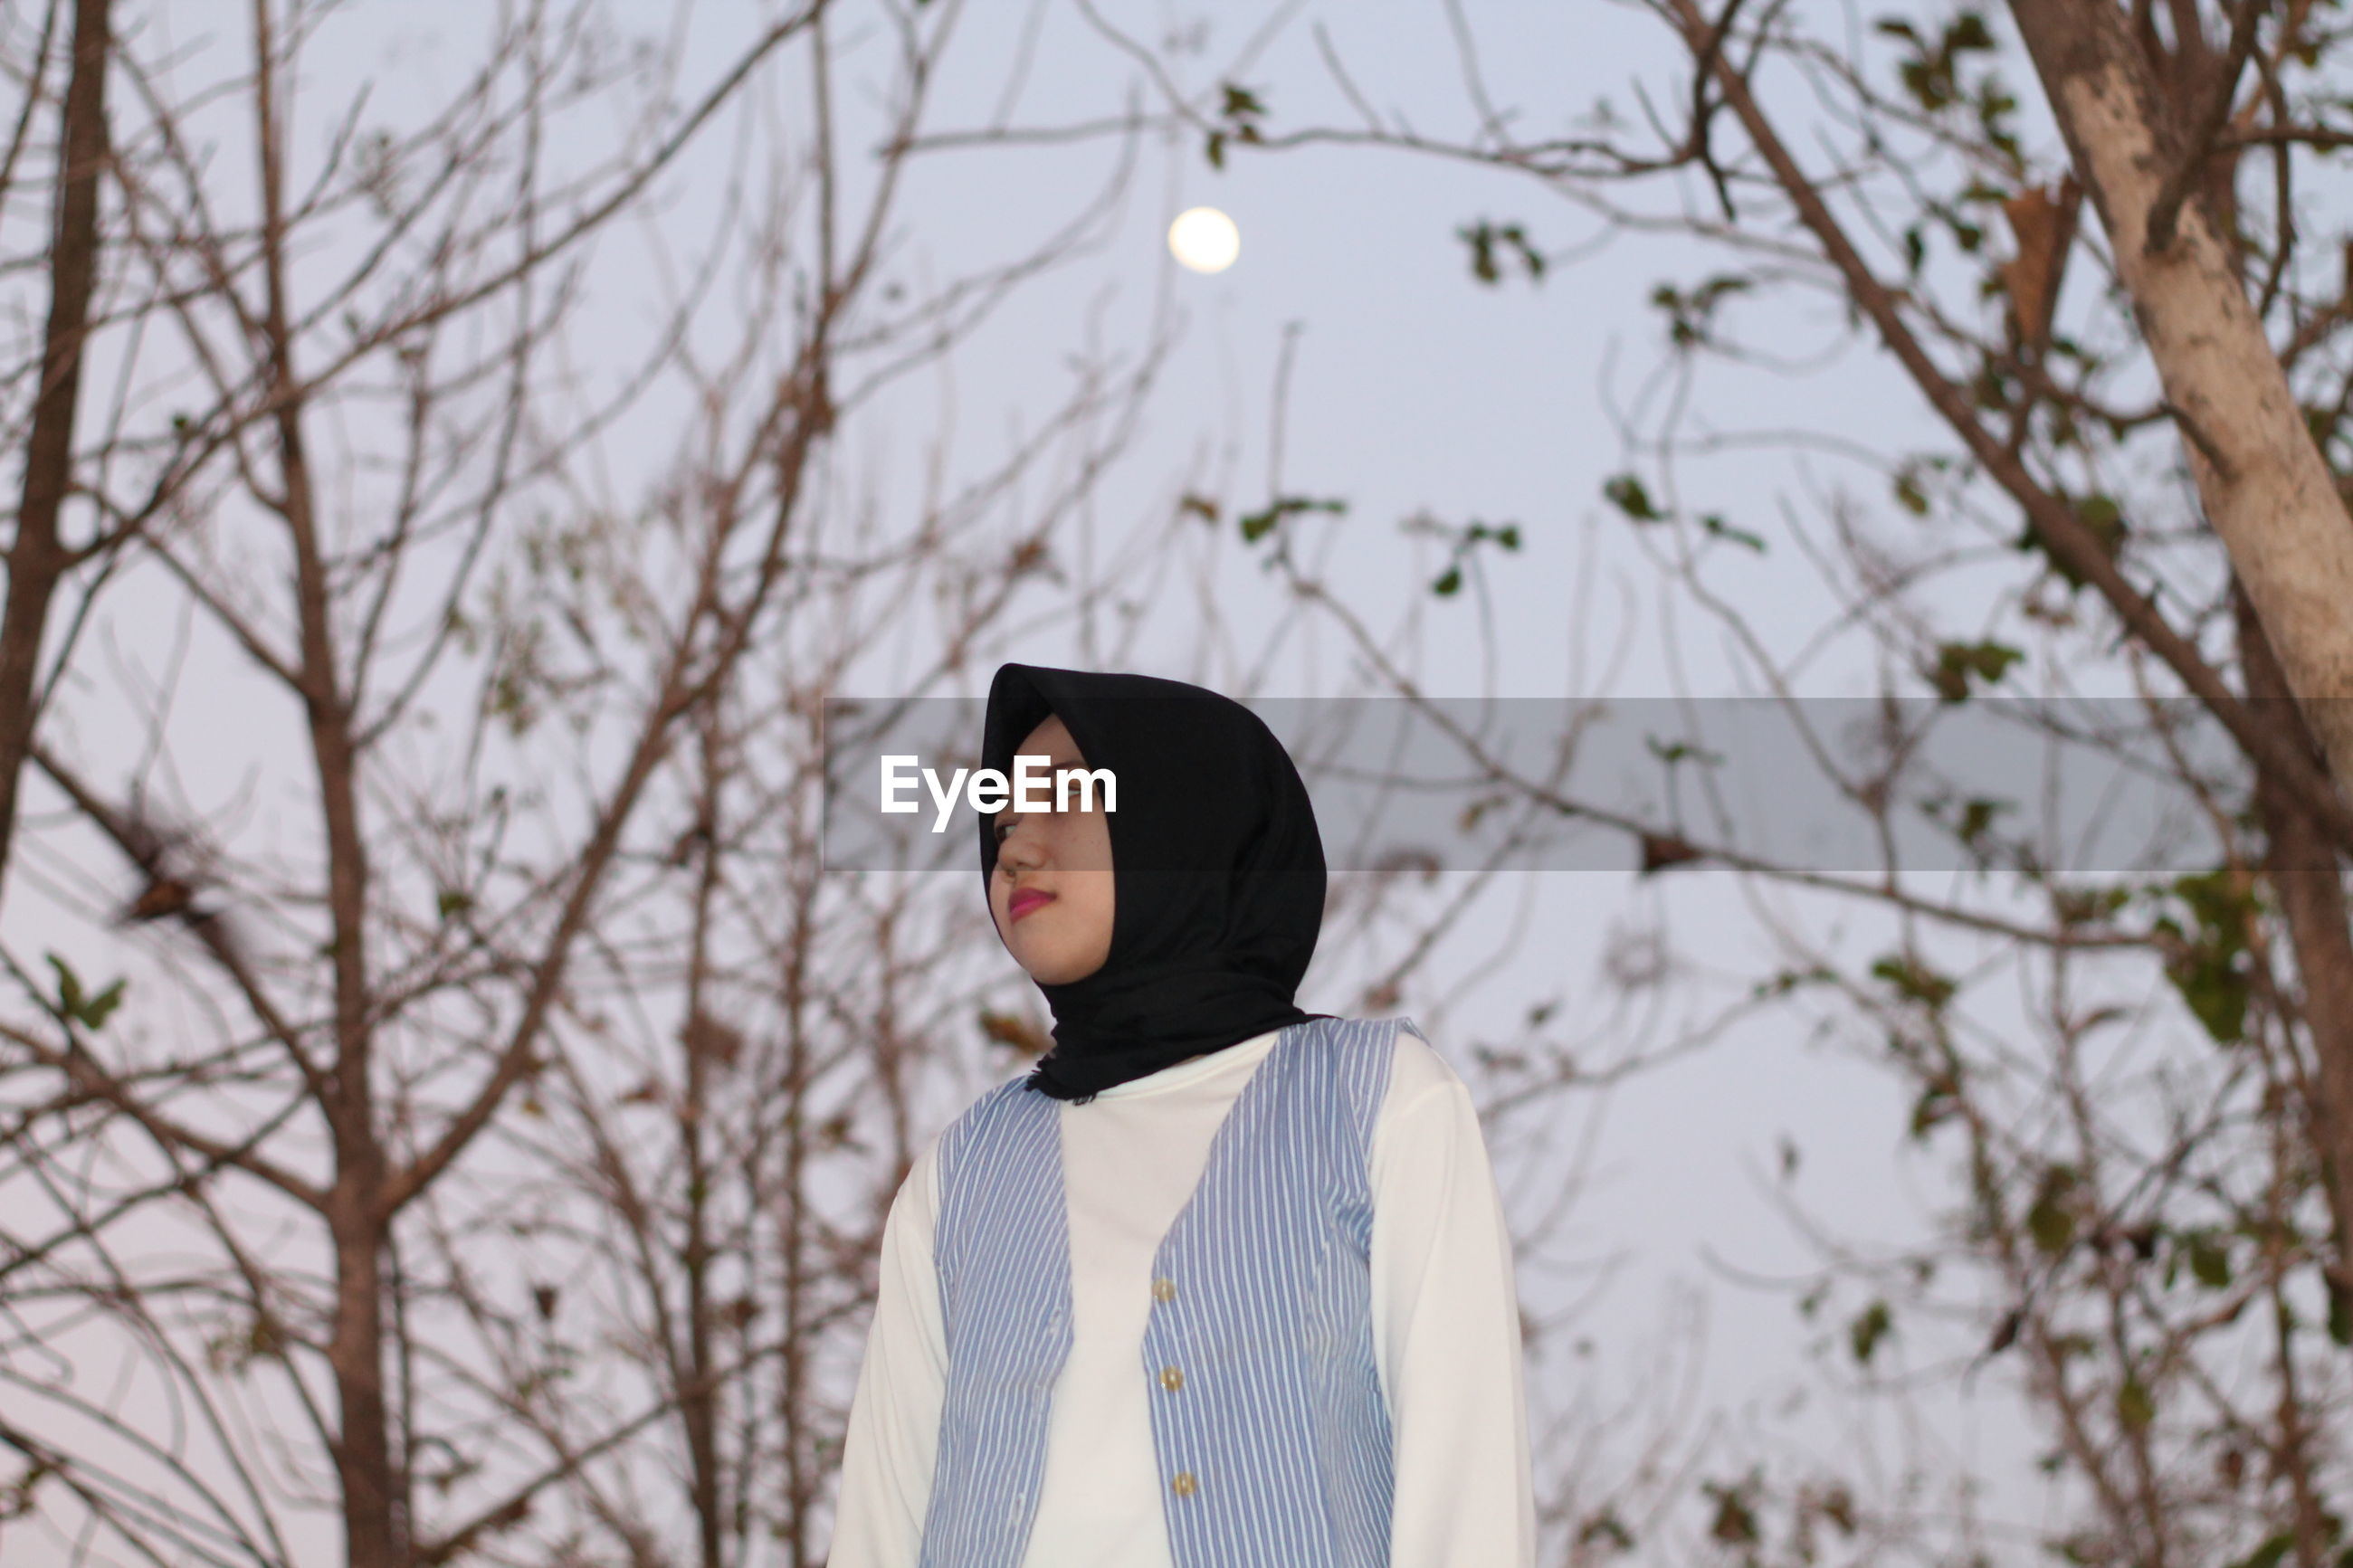 Low angle view of woman in hijab standing against trees